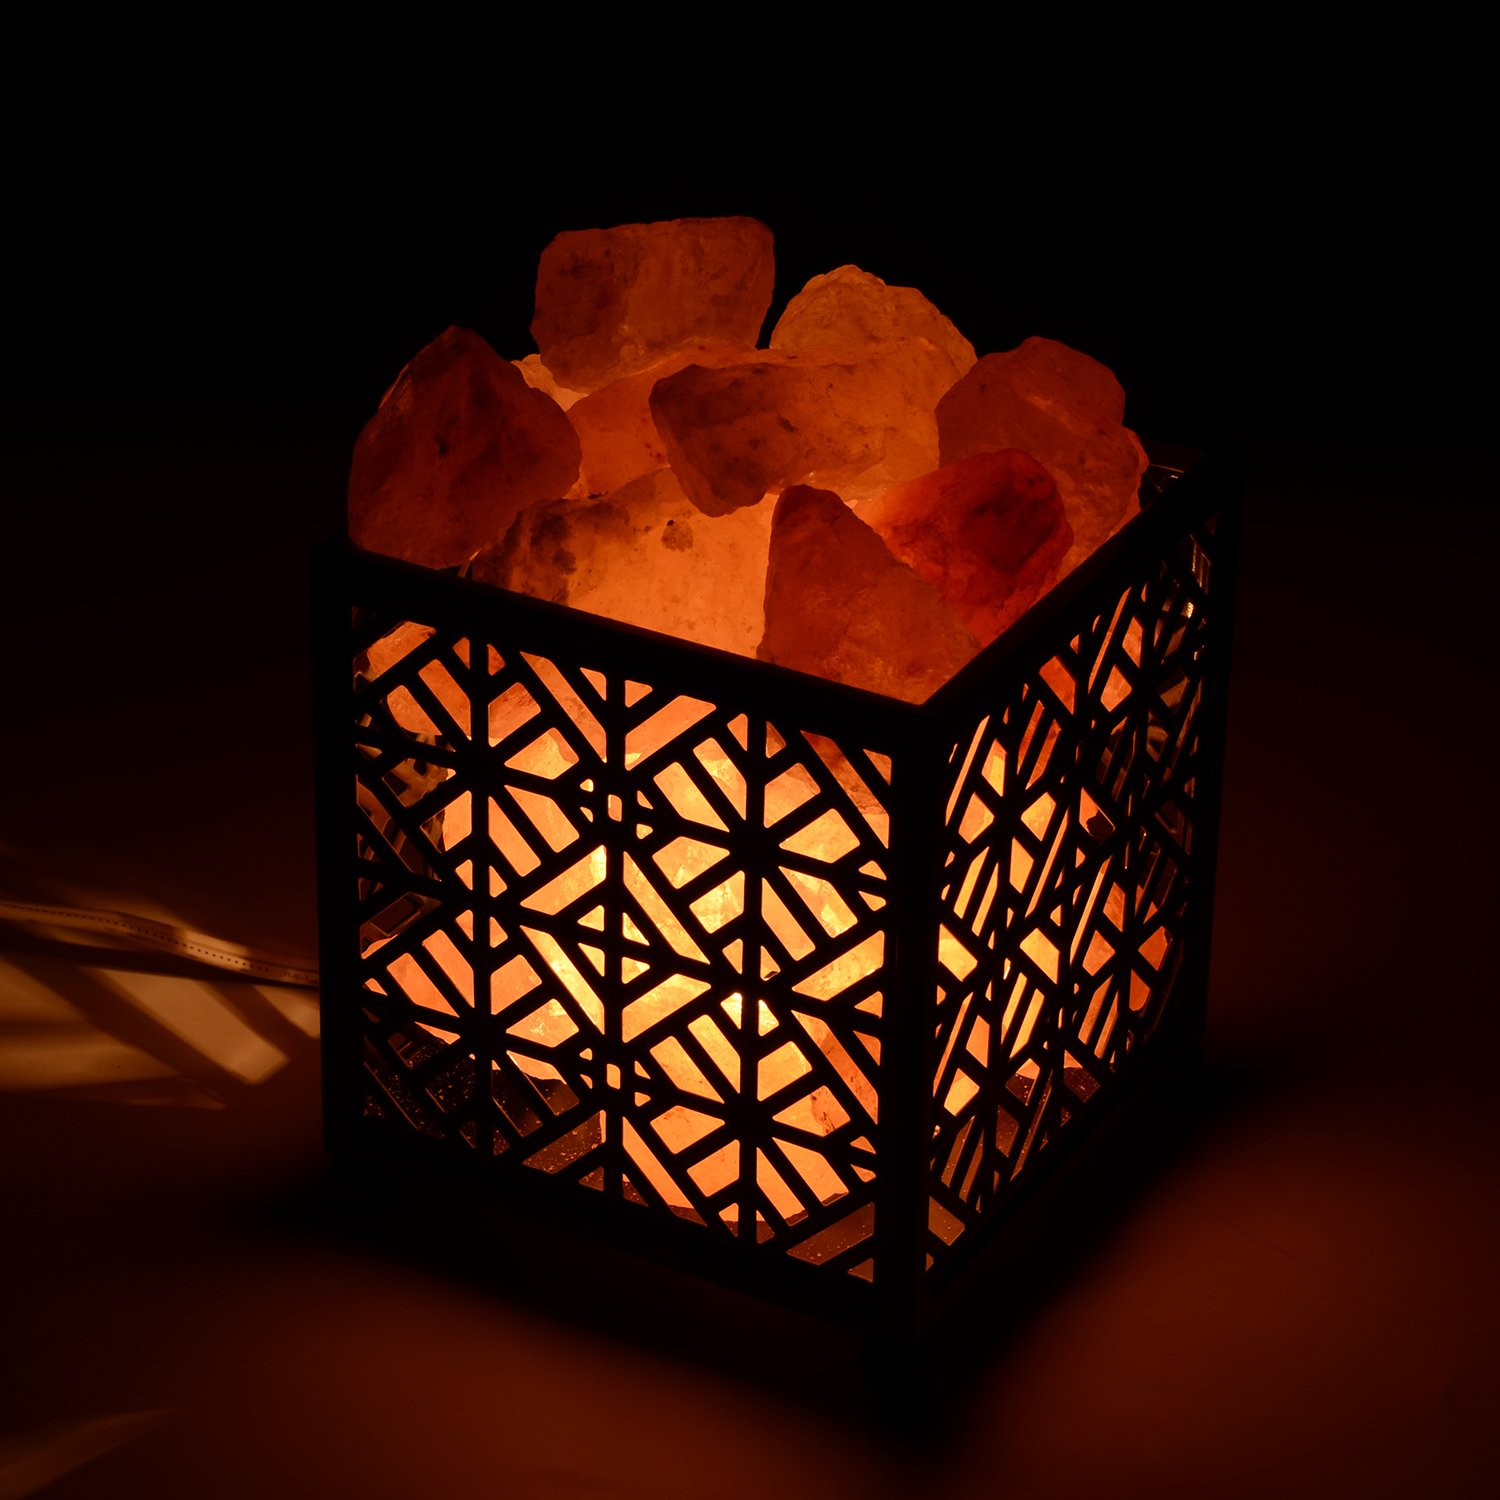 Himalayan Salt Lamp,CREATIVE DESIGN Salt Lamp Natural Salt Rock Lamp with Metal Basket for Air Purifying, Included UL Cord, On/Off Switch and Bulbs. (5''Height, 4 – 4.8 lbs)